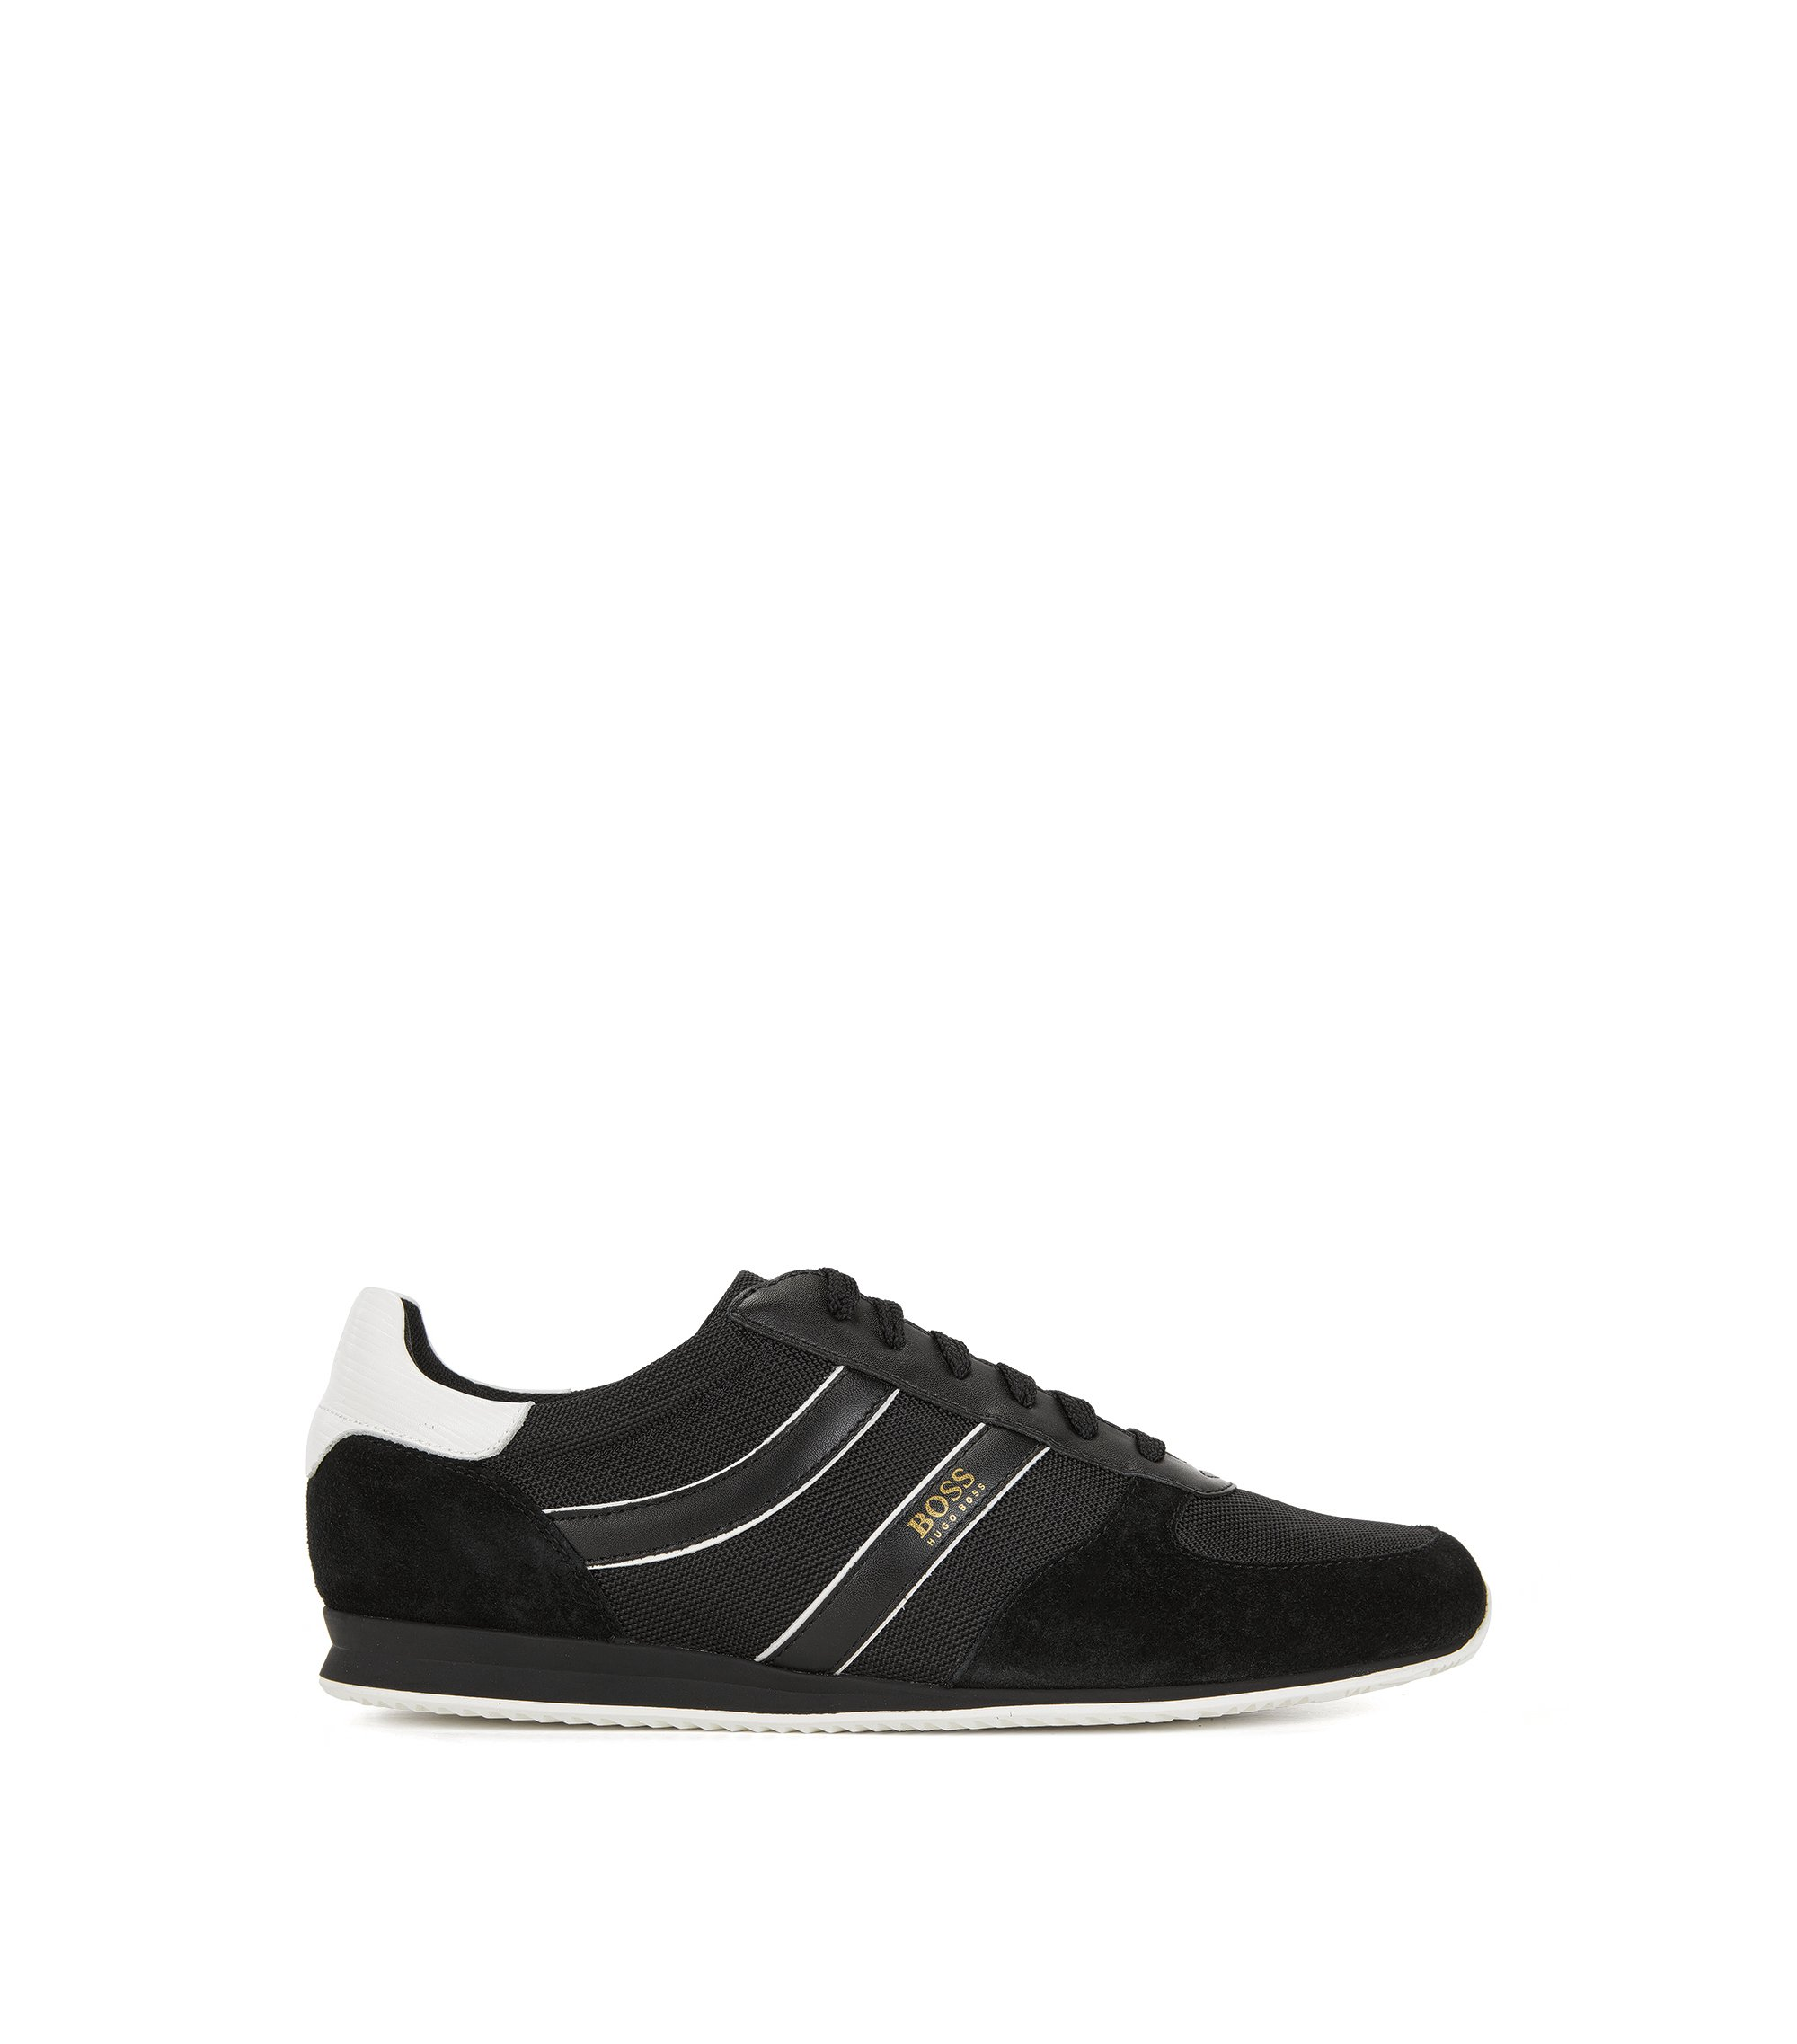 Sneakers low-top con rivestimenti in pelle scamosciata, Nero